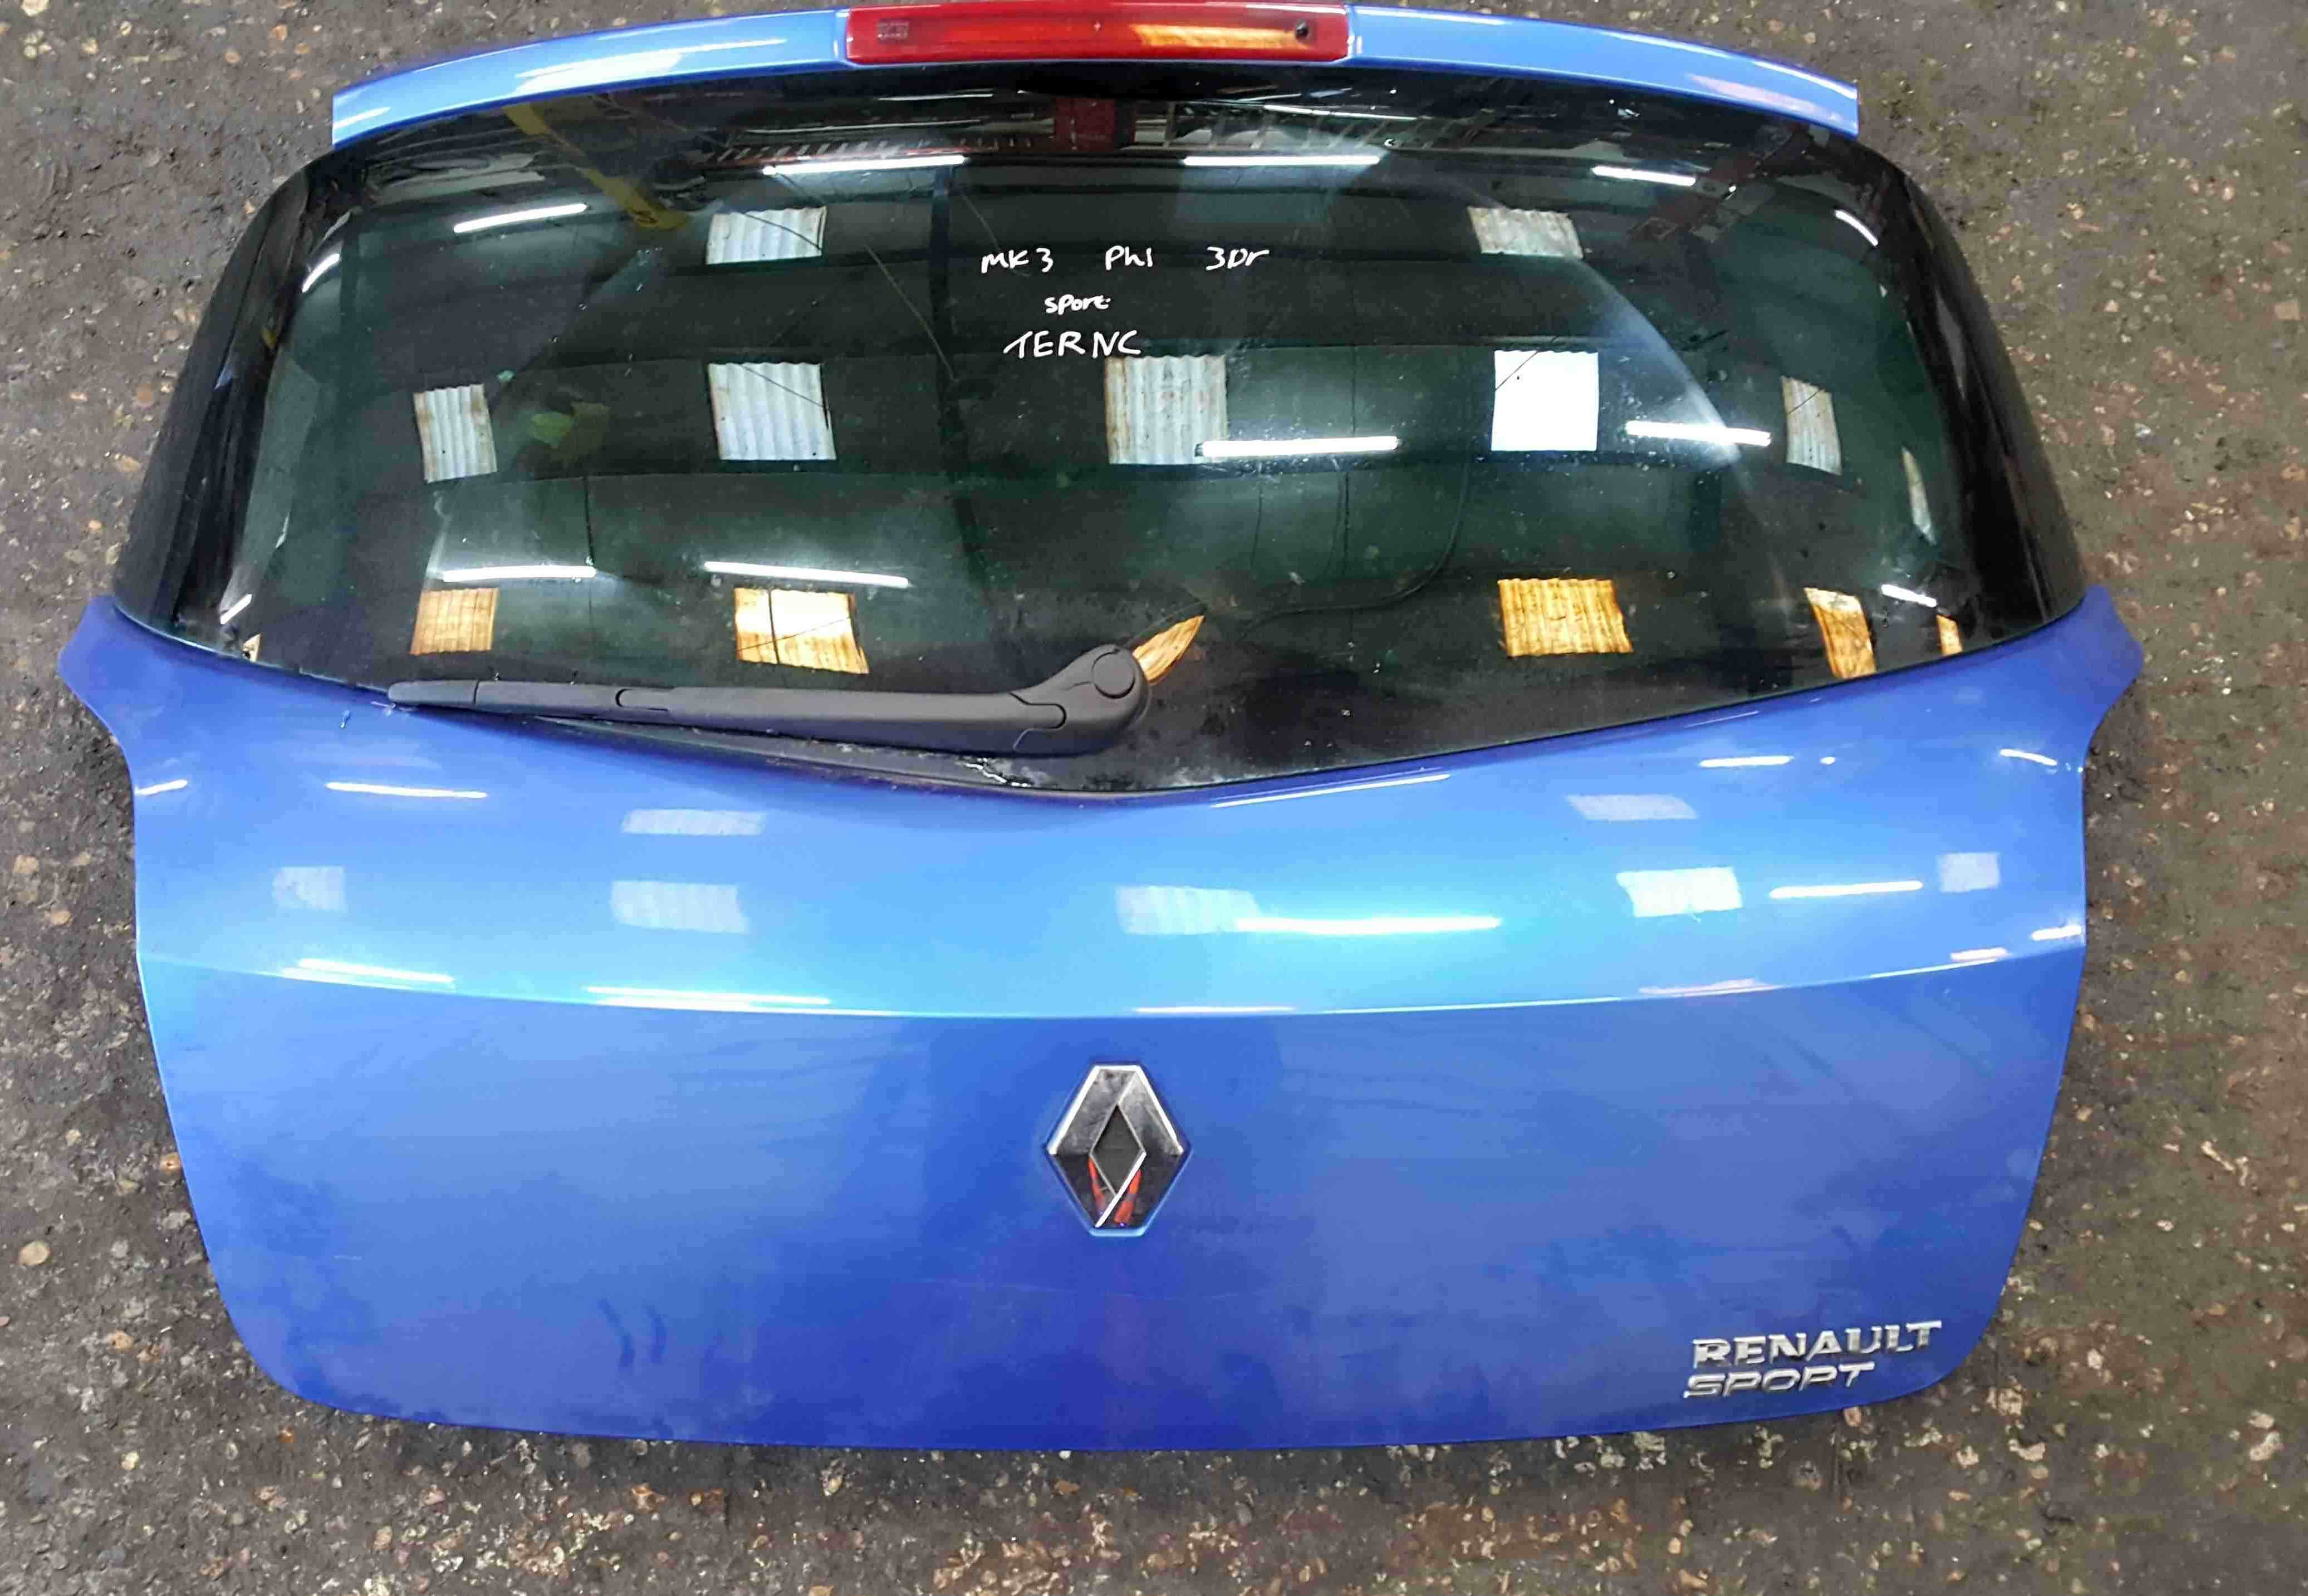 Renault Clio Sport 2001-2012 192 200 Rear Boot Tailgate Blue TERNC